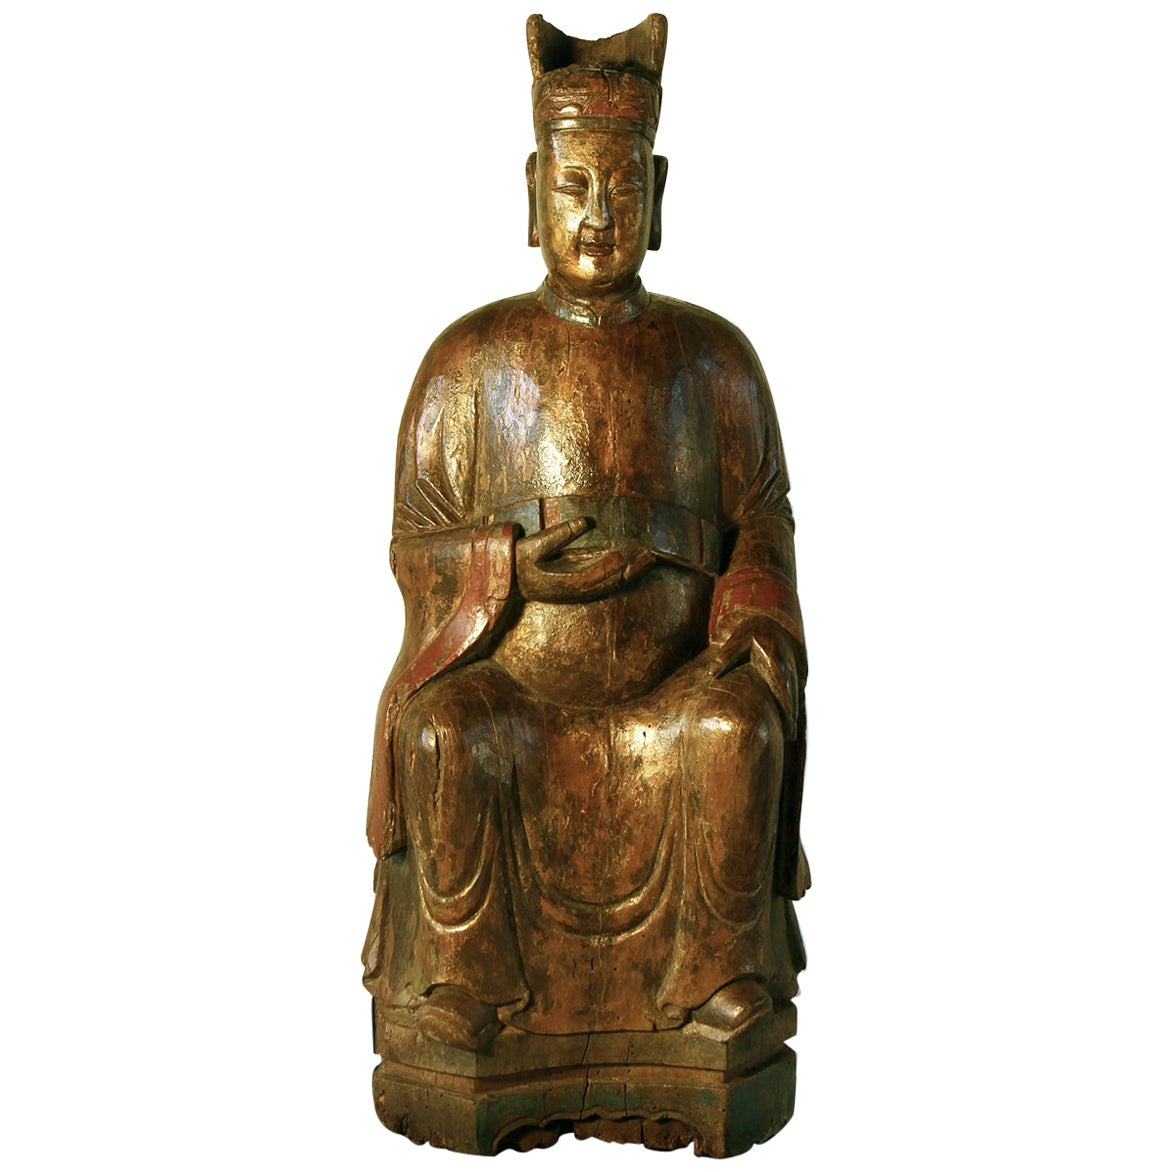 18th Century Chinese Sculpture of a Dignitary in Carved and Lacquered Hardwood